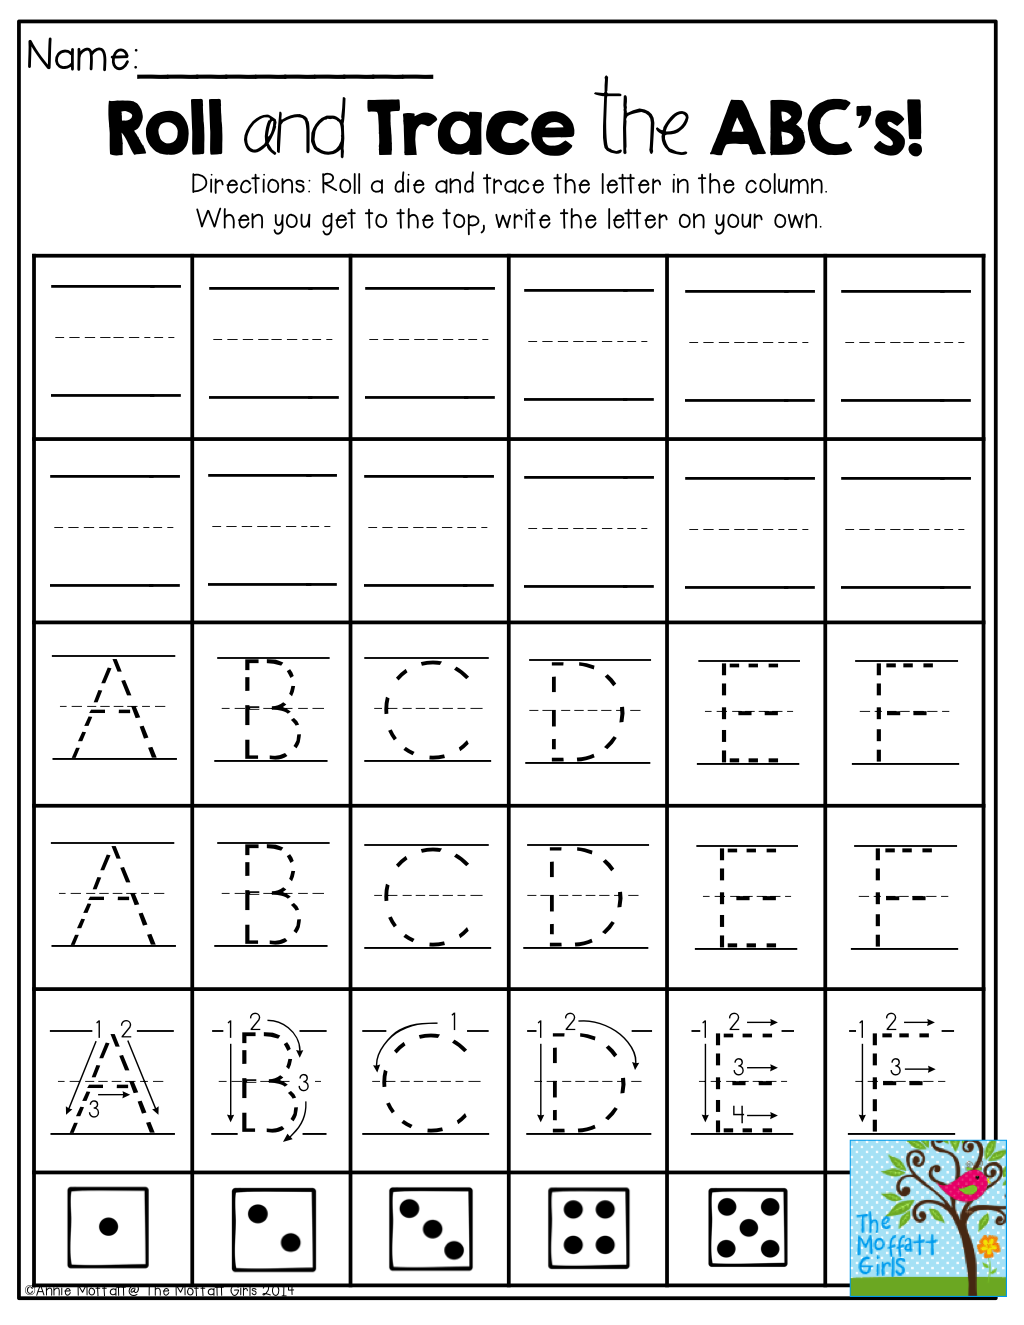 Roll and Trace the ABCs Roll a die and trace a letter The last – Trace Abc Worksheet